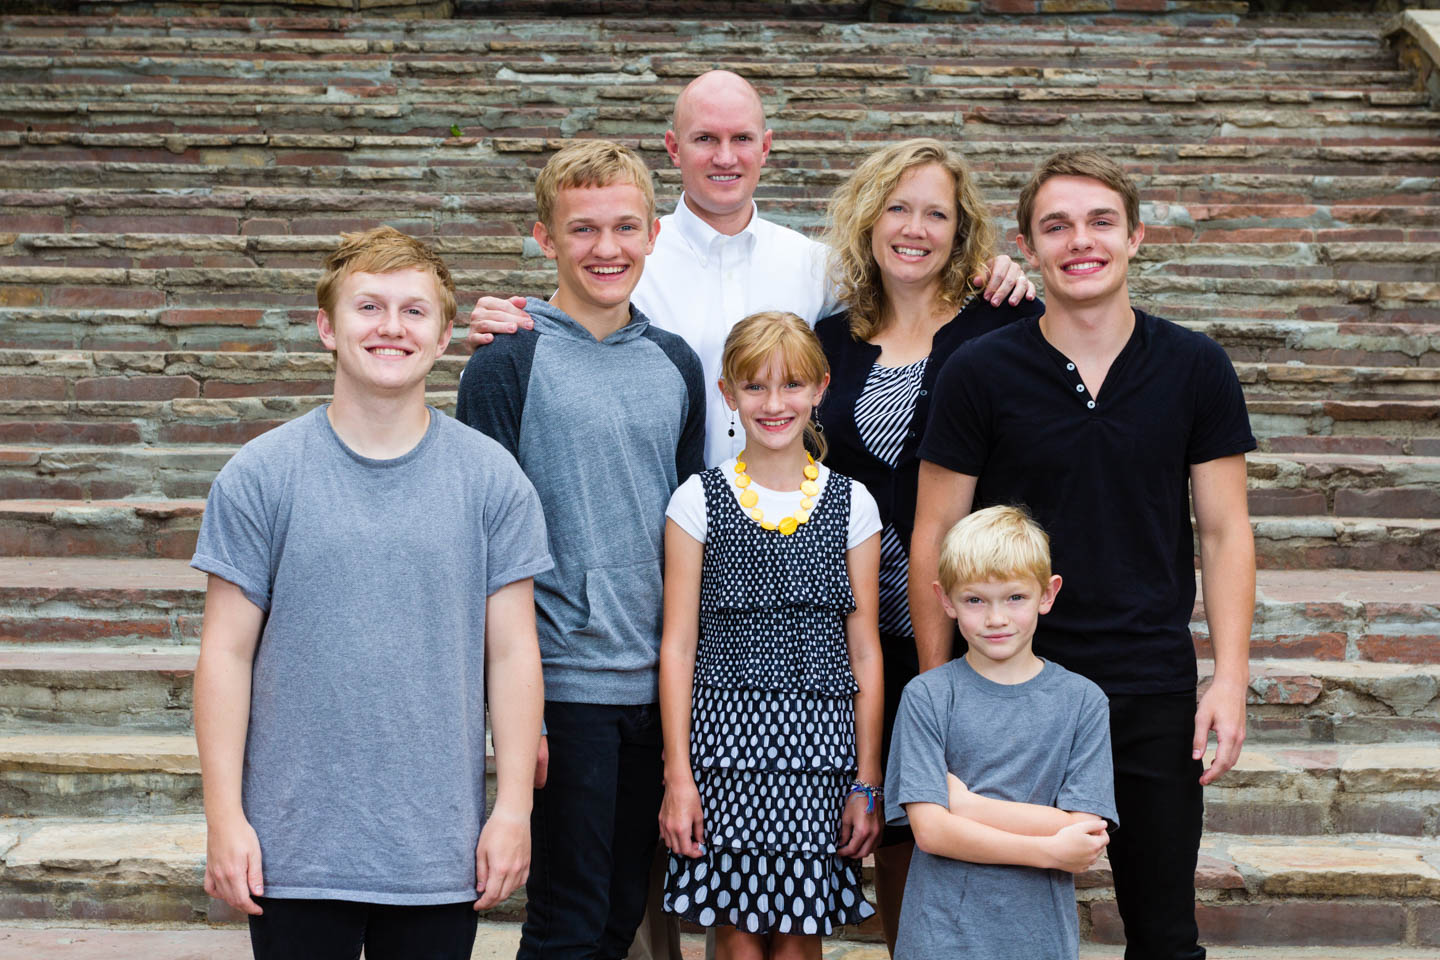 Family Photography in smaller units